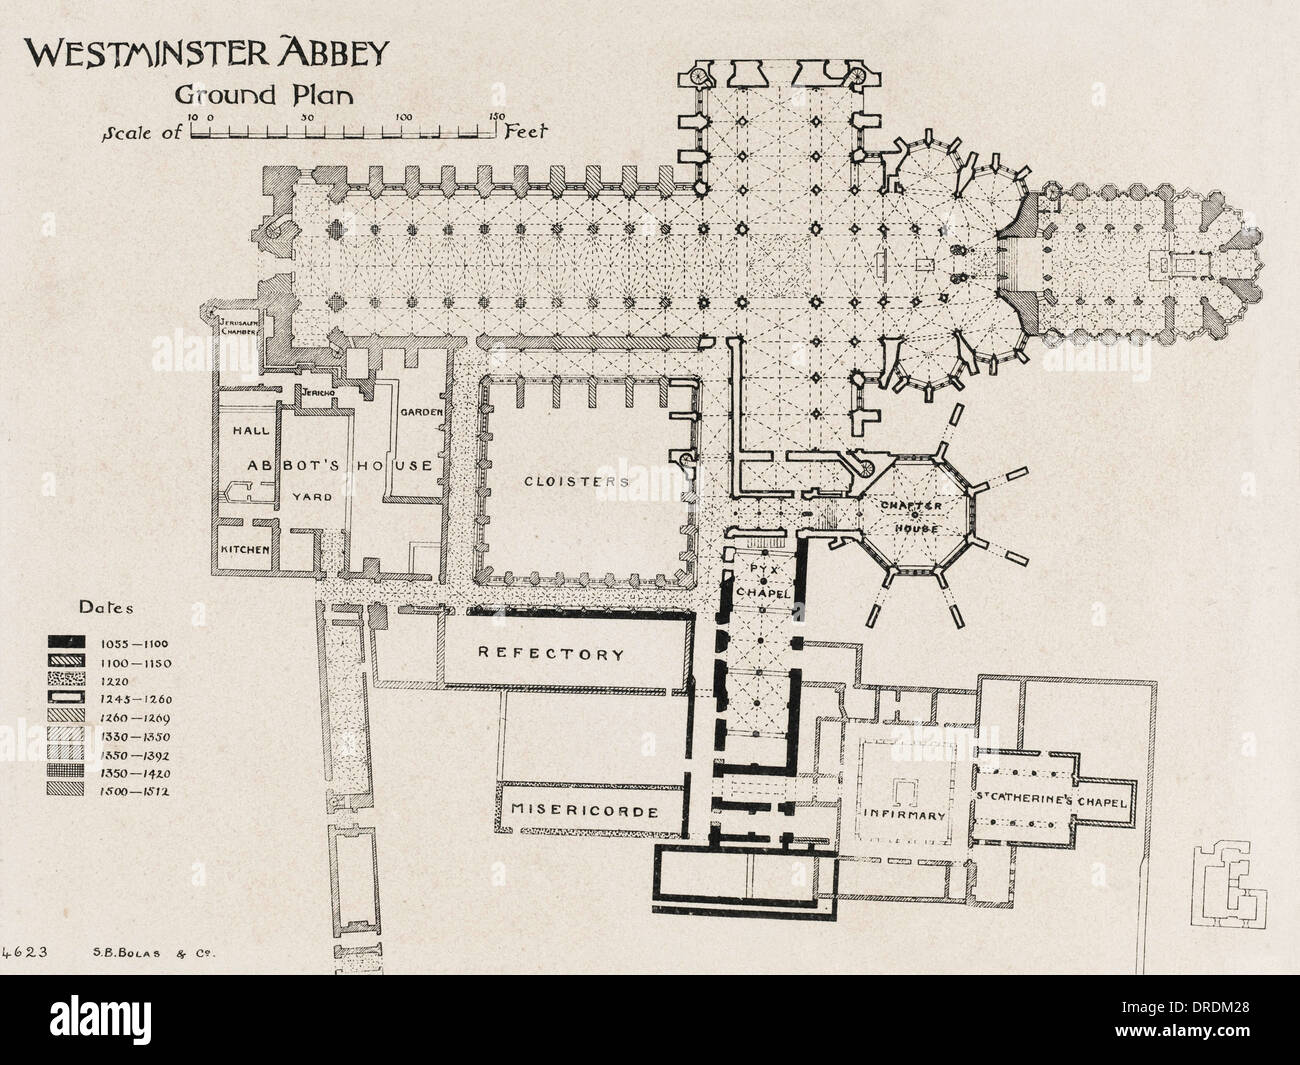 Ground Plan Of Westminster Abbey Stock Photo 66069312 Alamy